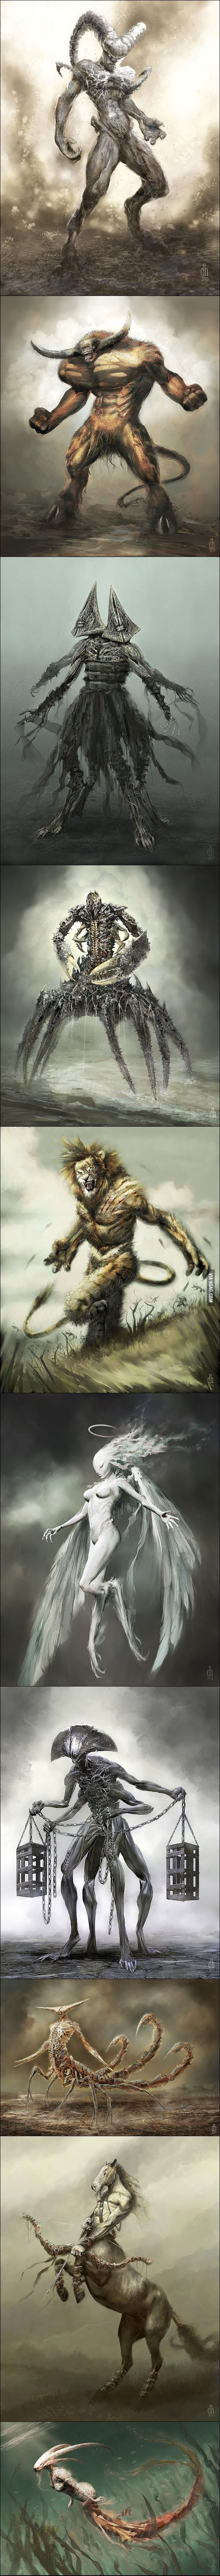 Awesome Zodiac monsters by Damon Hellandbrand... What's yours?